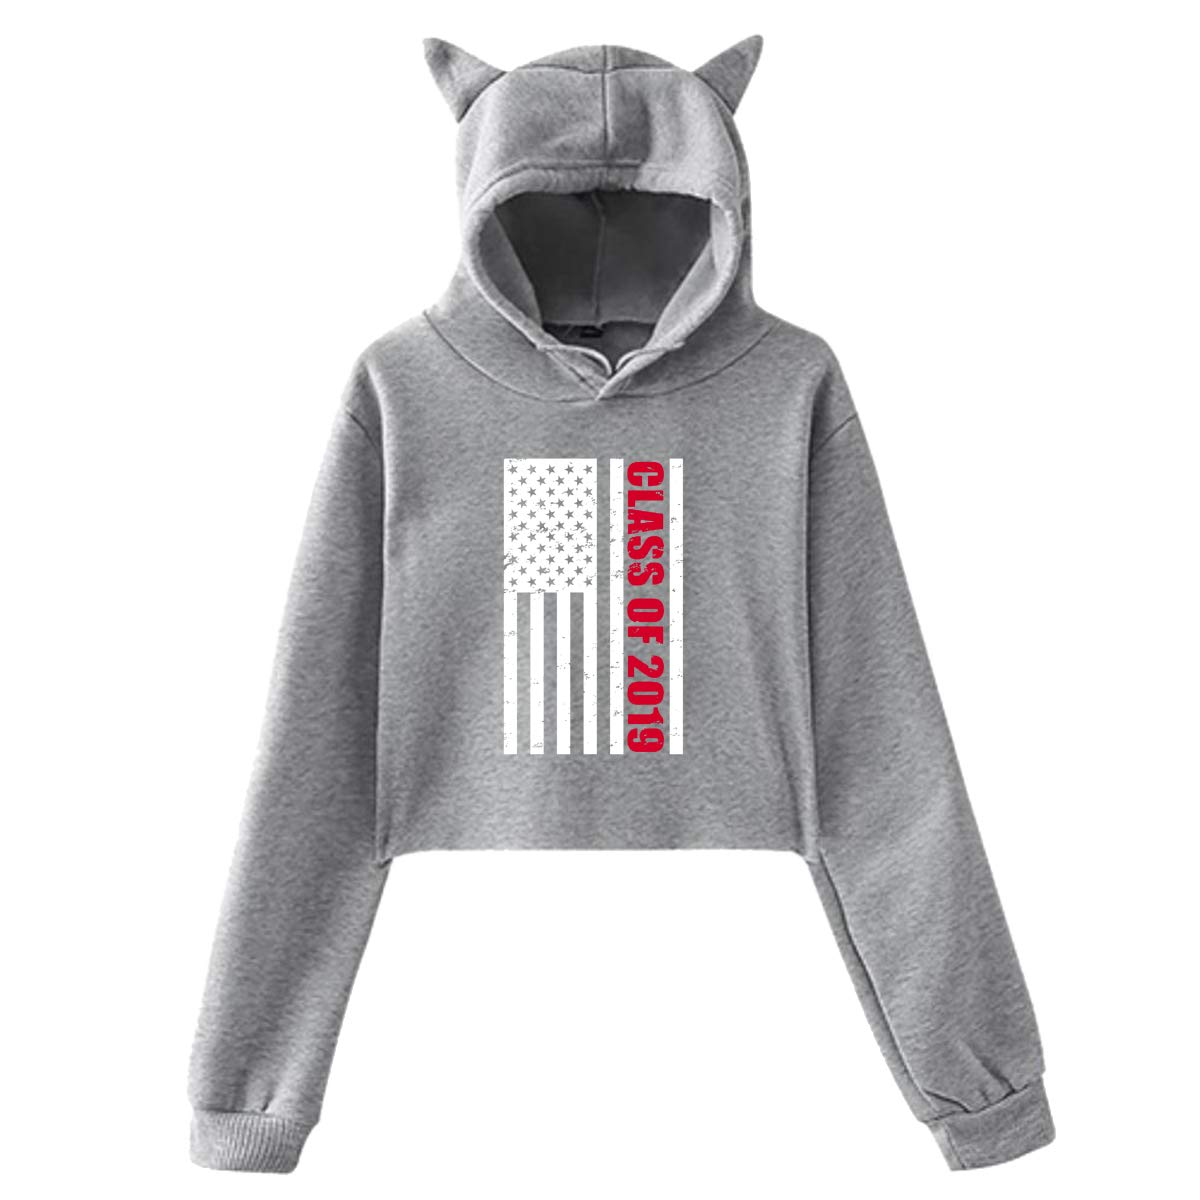 PDJUSH Womens Class of 2019 American Flag Sweatshirt Girl Lovely Cat Ear Hoodie Sweater Comfortable Long Sleeve Hoody Gray S